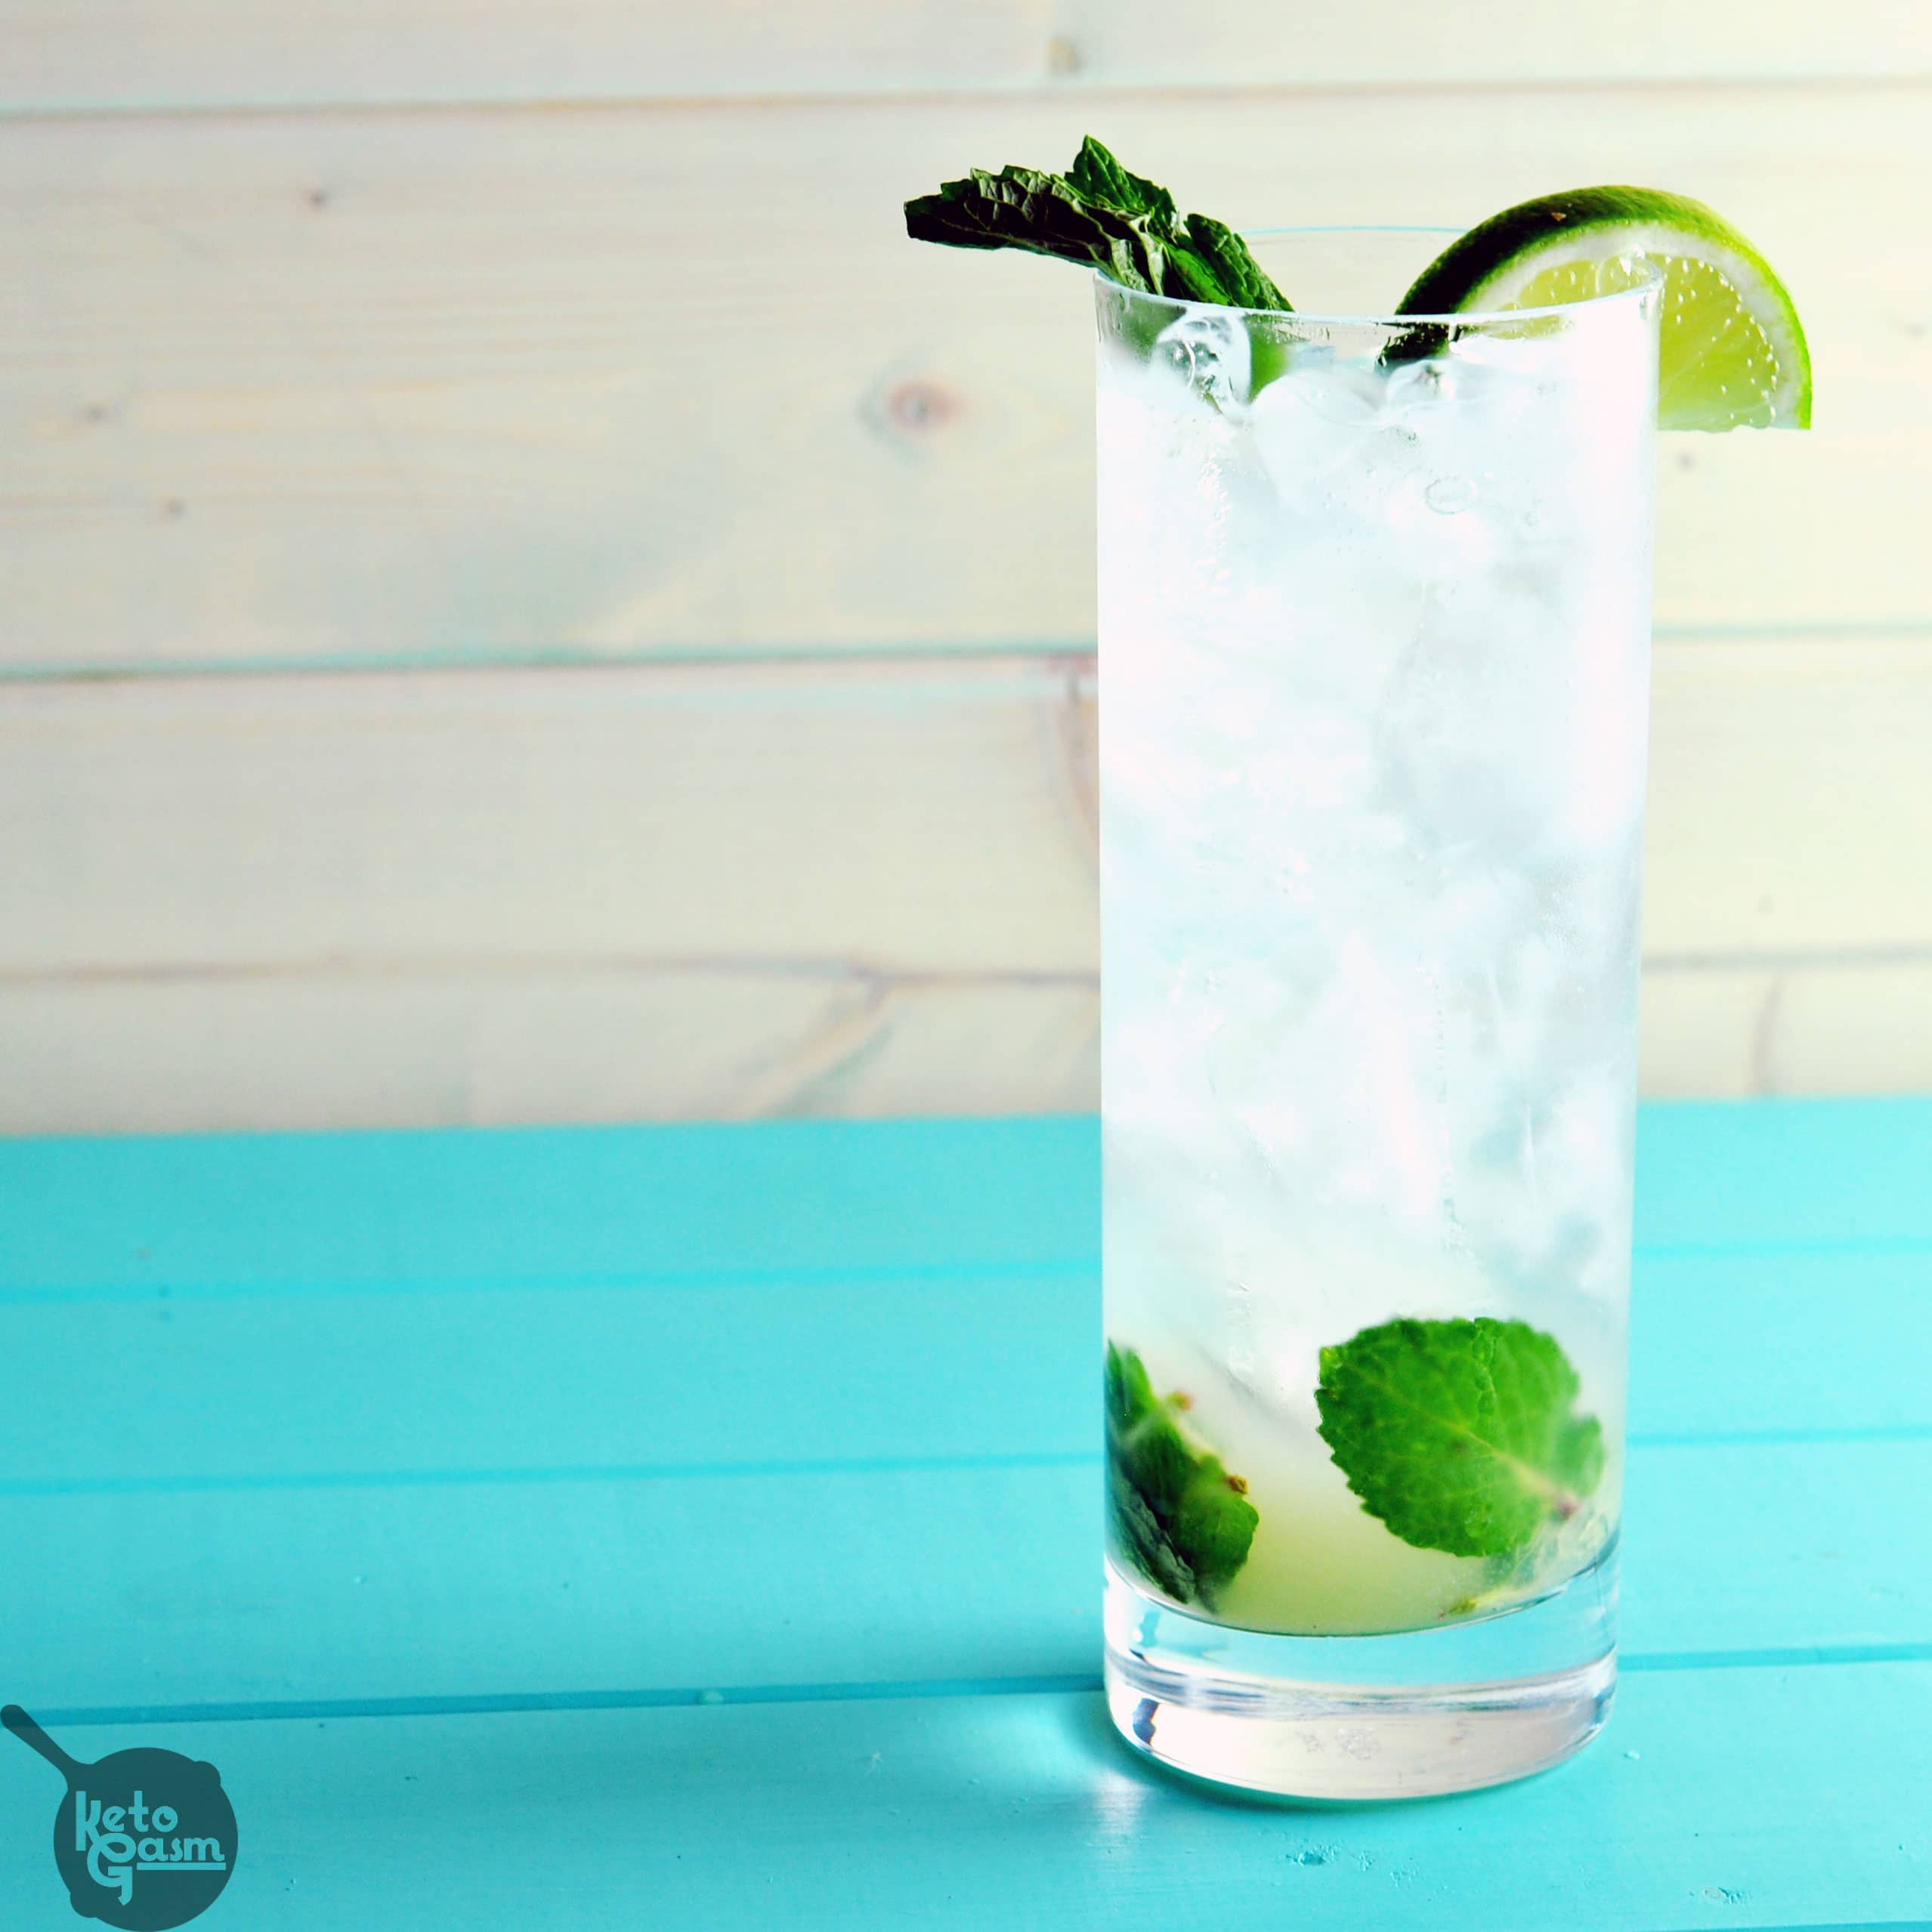 Sugar-Free Vodka Mojito   KETOGASM This drink tastes identical to the mojitos served at my favorite local happy hour spot... without all the sugar and carbs! This cocktail is perfect if you are searching for a drink that is low carb, sugar free, or just want to try something new. #cocktails #healthy #lowcarb #sugarfree #diet #keto #lchf #ketosis #atkins #drinks #booze